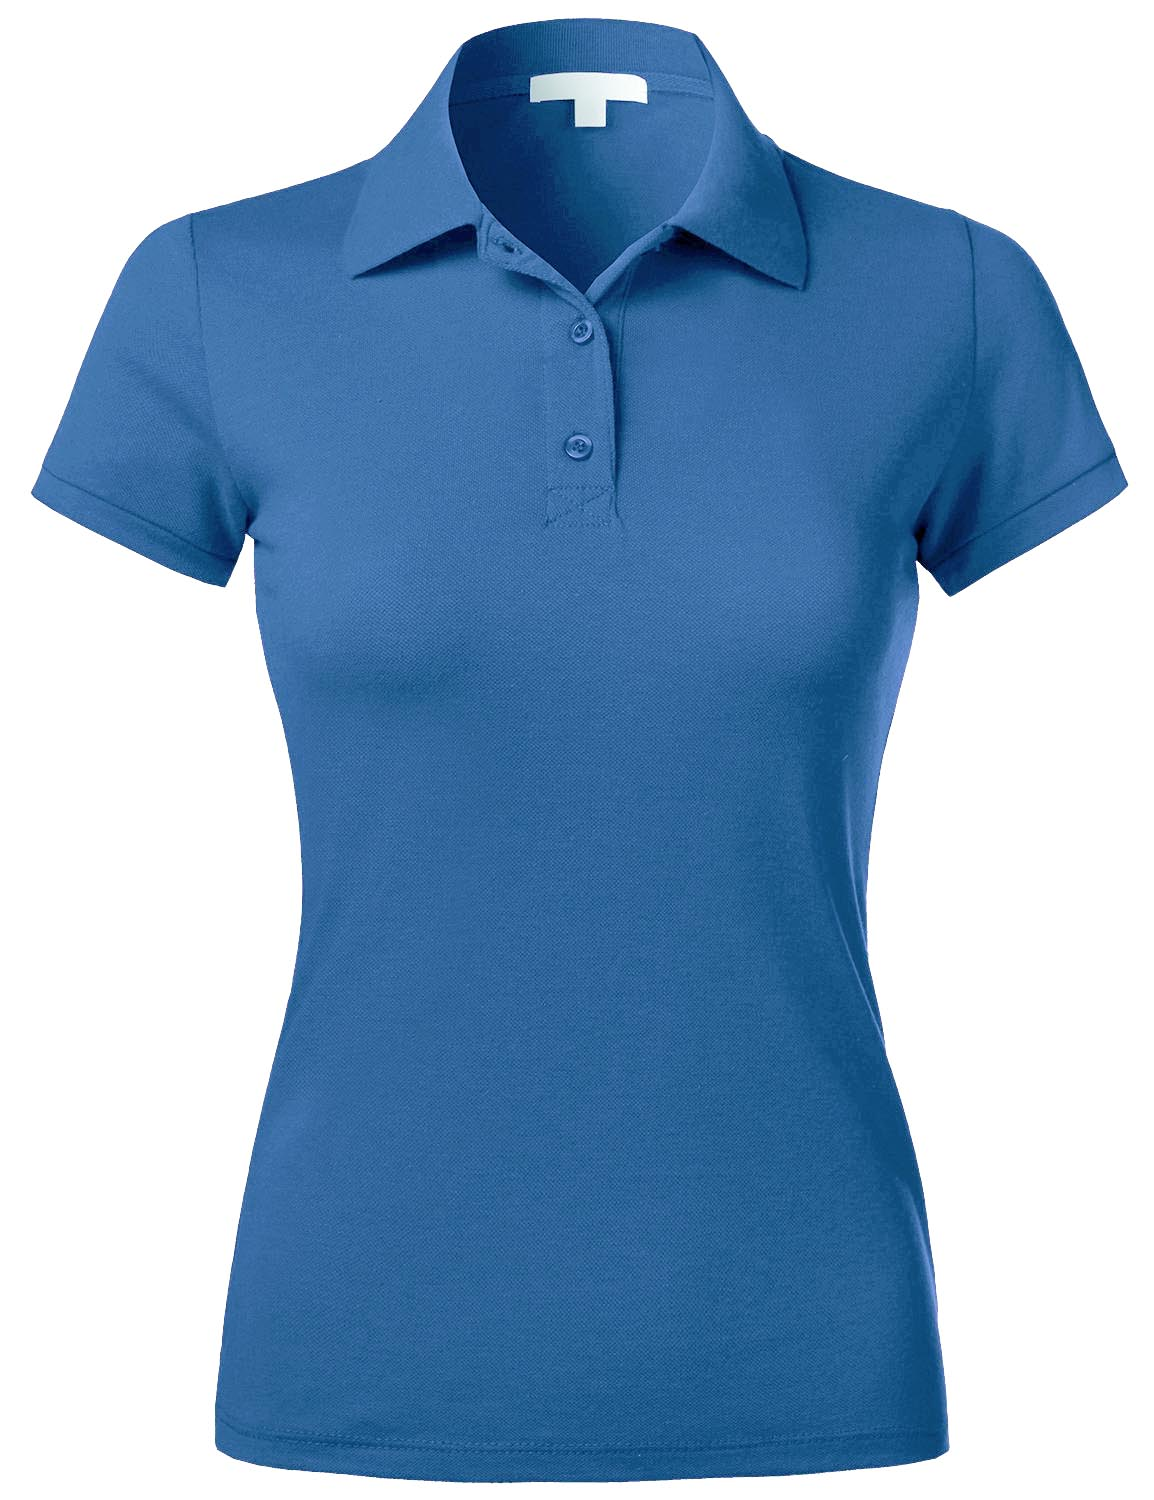 polo shirts for women ec womens polo shirts short sleeve slim fit 3ecd0001 mhksyxi